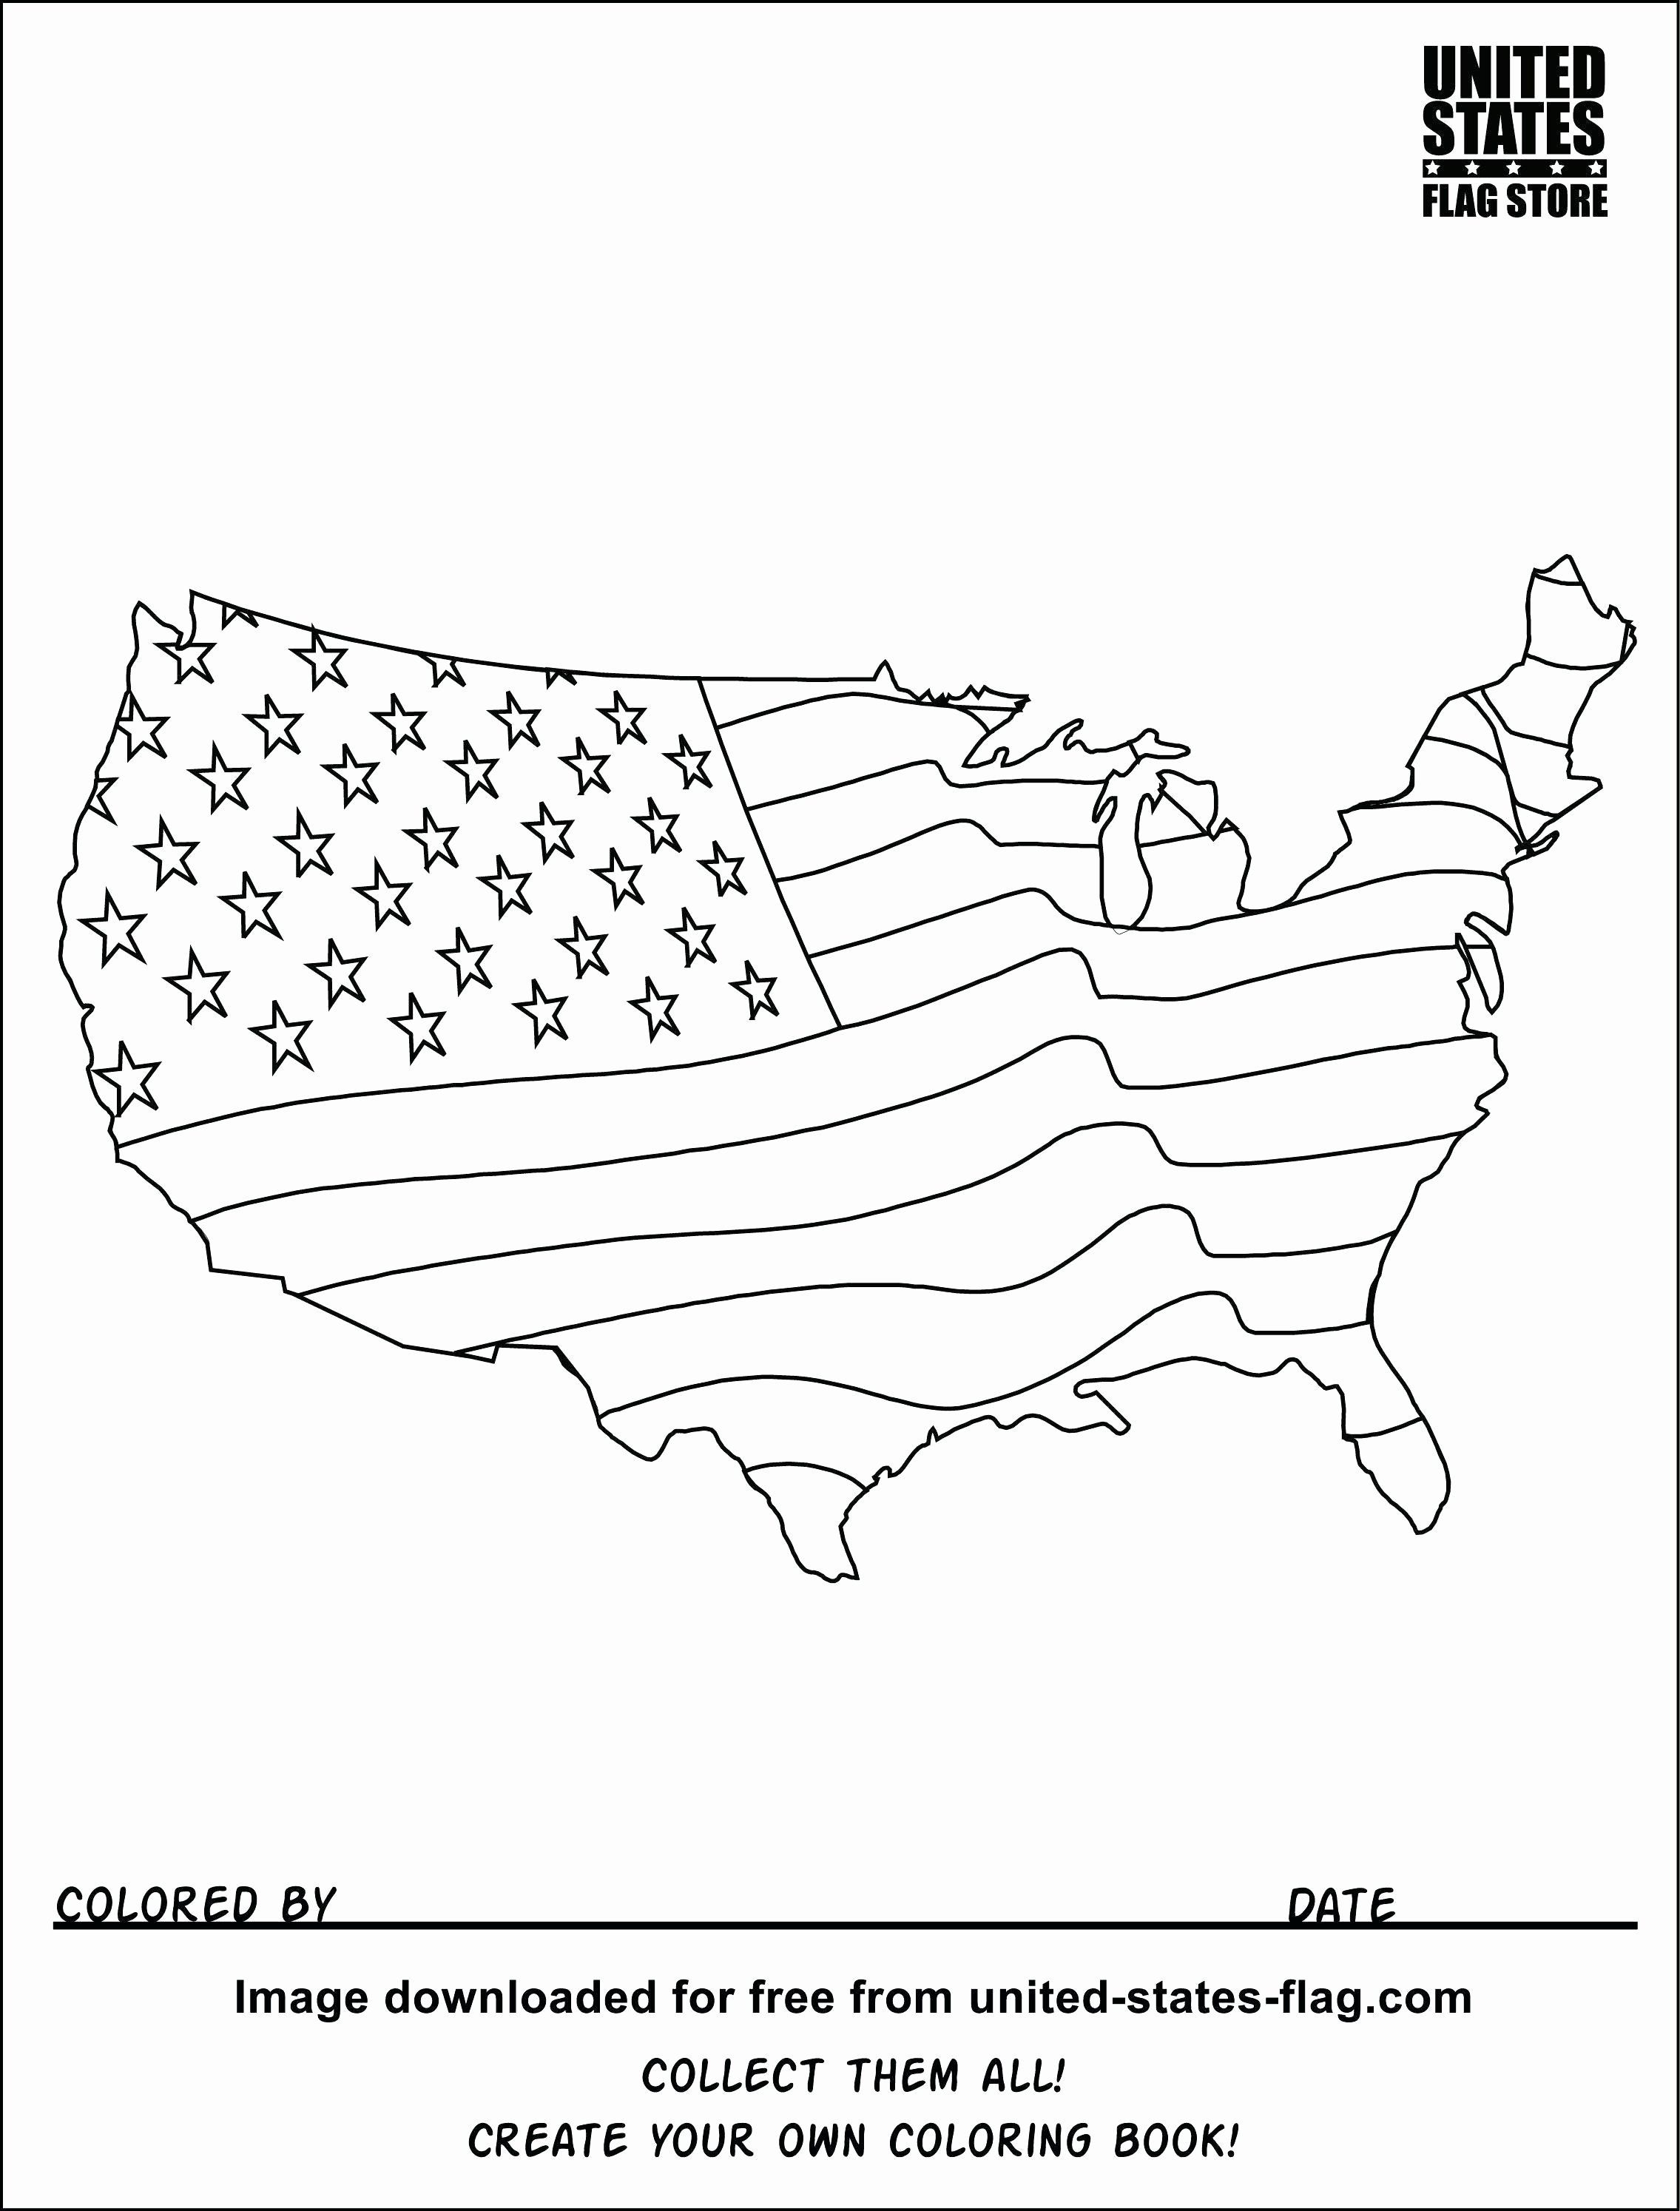 Free Coloring Pages Countries Beautiful Coloring Flag Pages Mrpage In 2020 Free Coloring Pages Coloring Pages Free Coloring